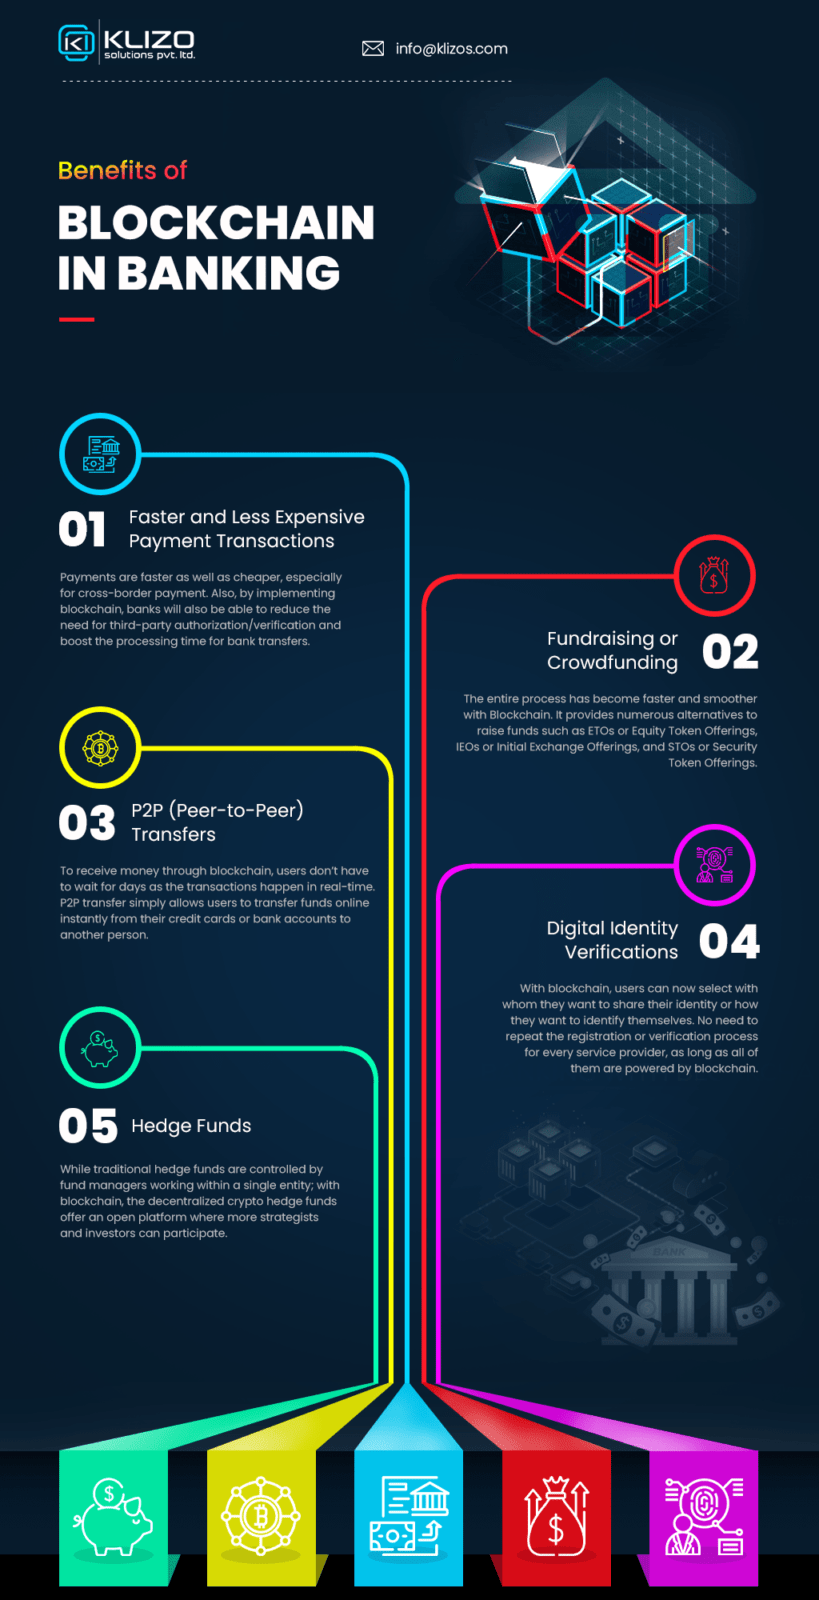 benefits of blockchain in banking - infographic